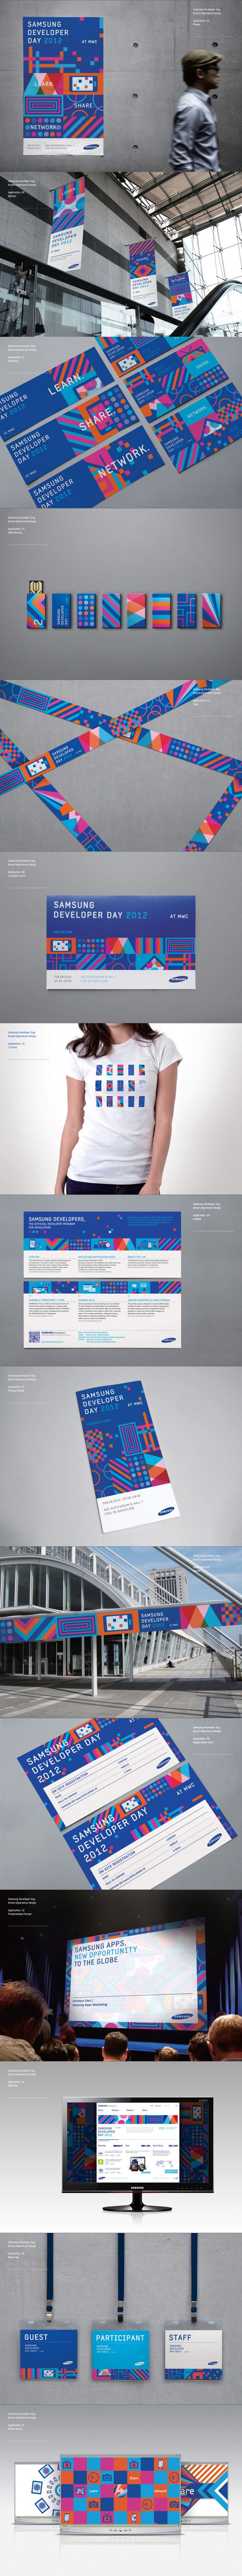 Samsung Developers Brand eXperience Design by Plus X